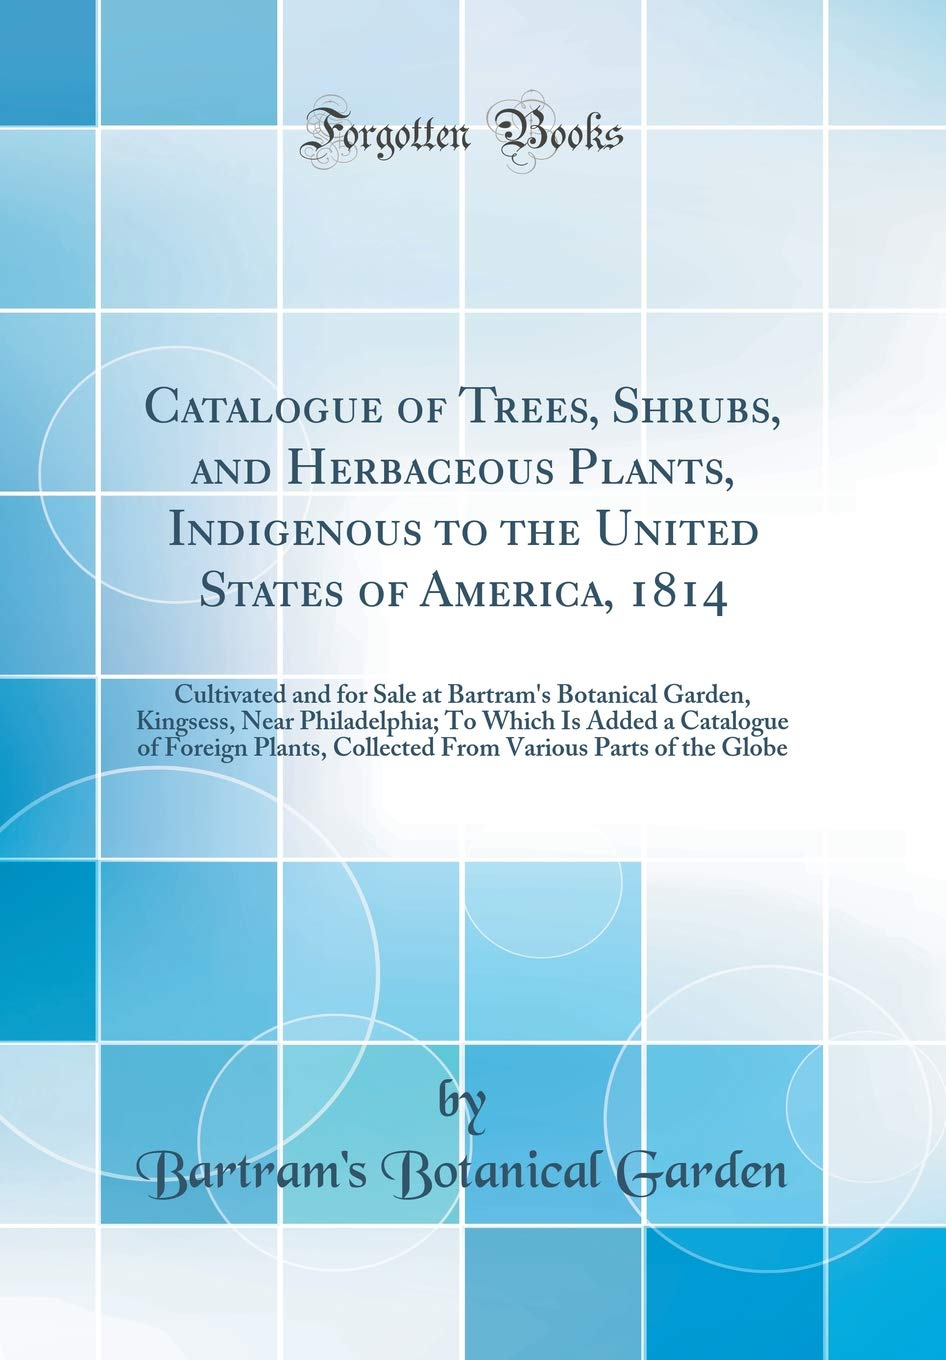 Catalogue of Trees, Shrubs, and Herbaceous Plants, Indigenous to the United States of America, 1814: Cultivated and for Sale at Bartram's Botanical ... of Foreign Plants, Collected from Variou pdf